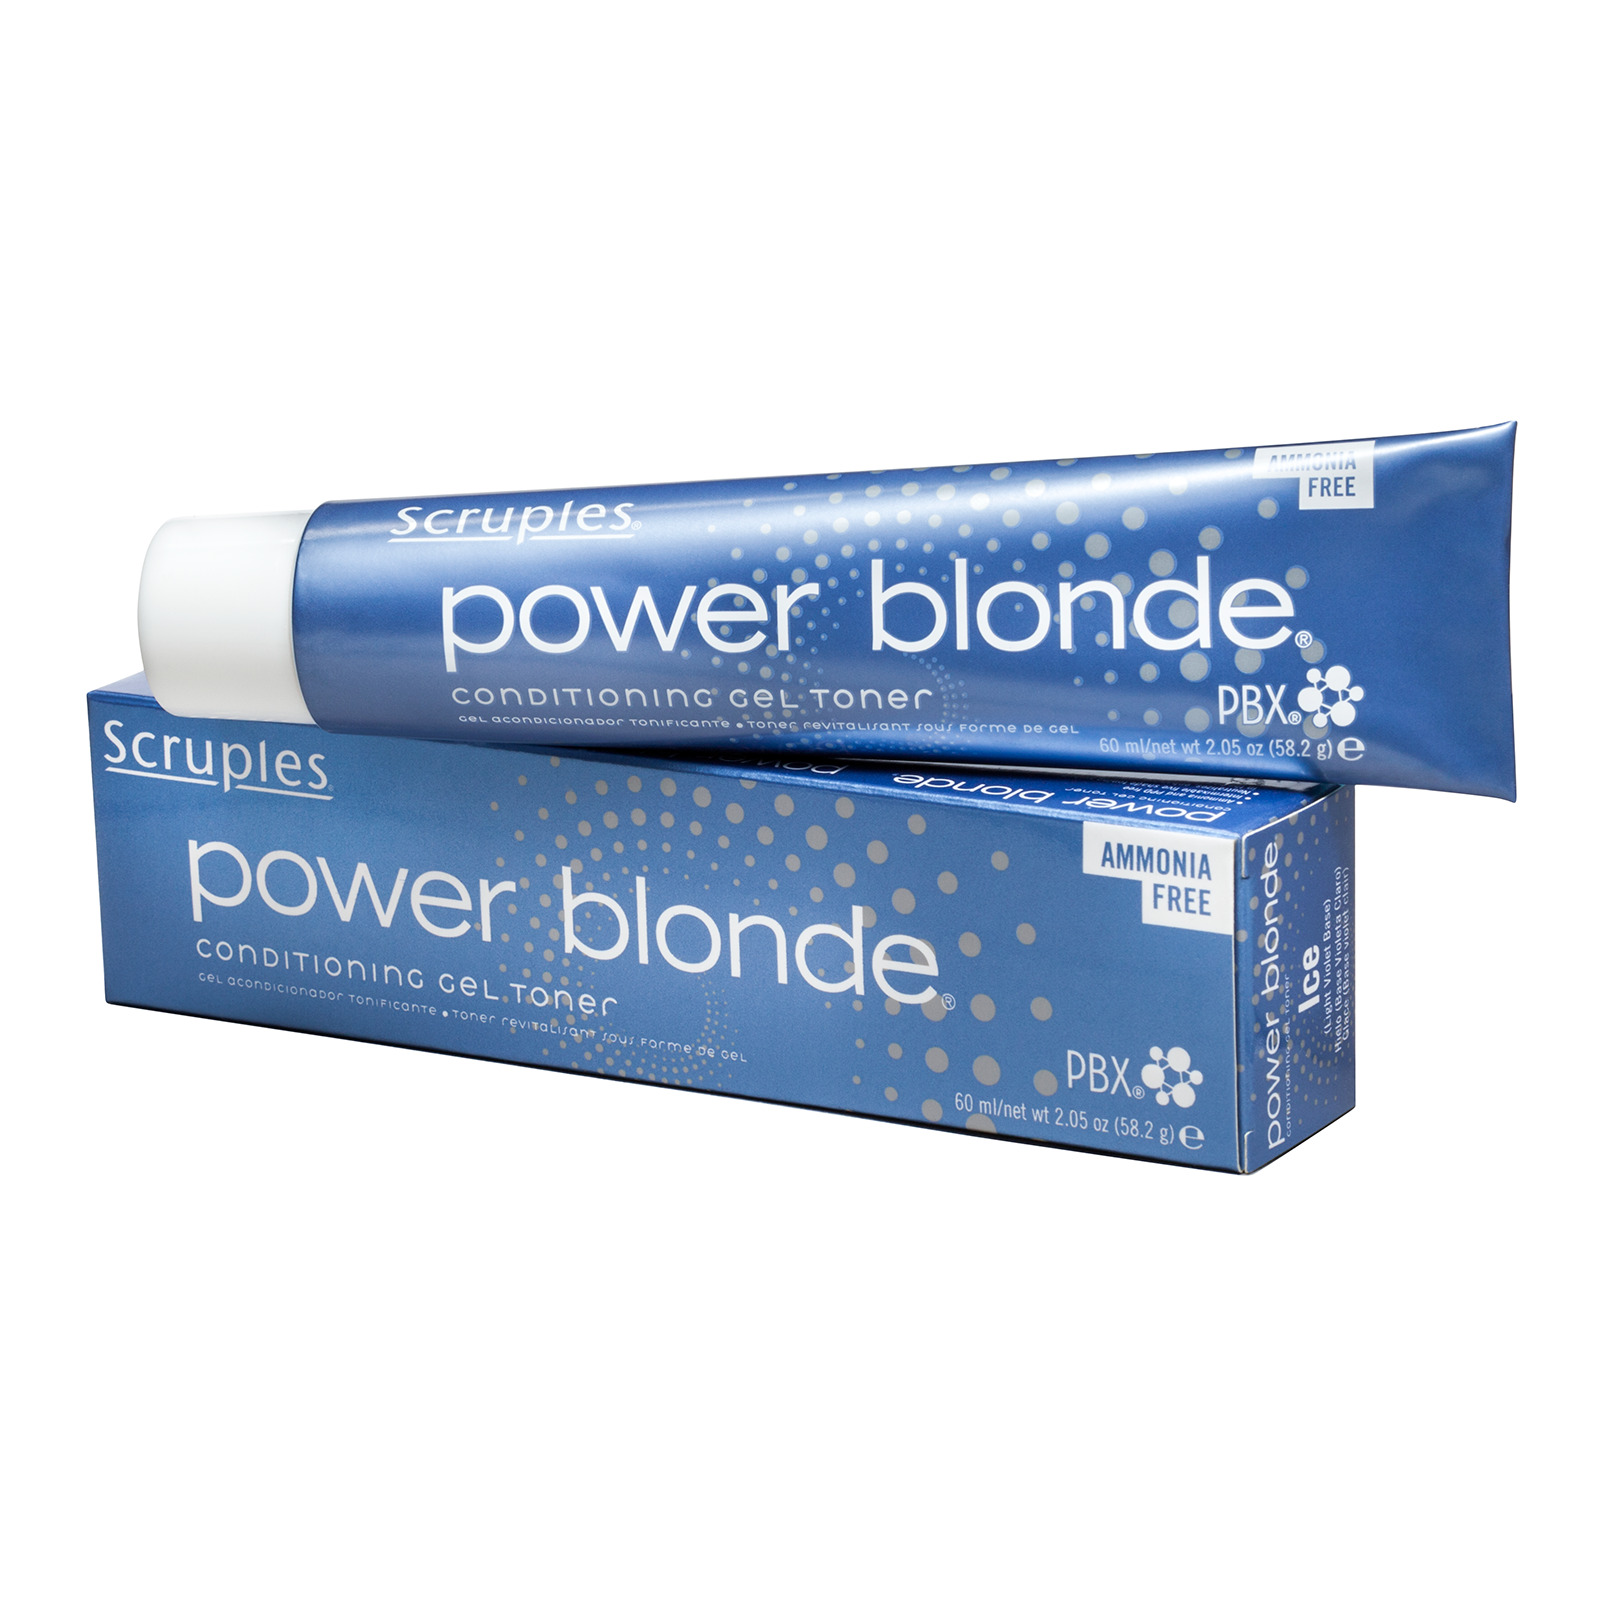 Power Blonde Conditioning Gel Toners Scruples Cosmoprof